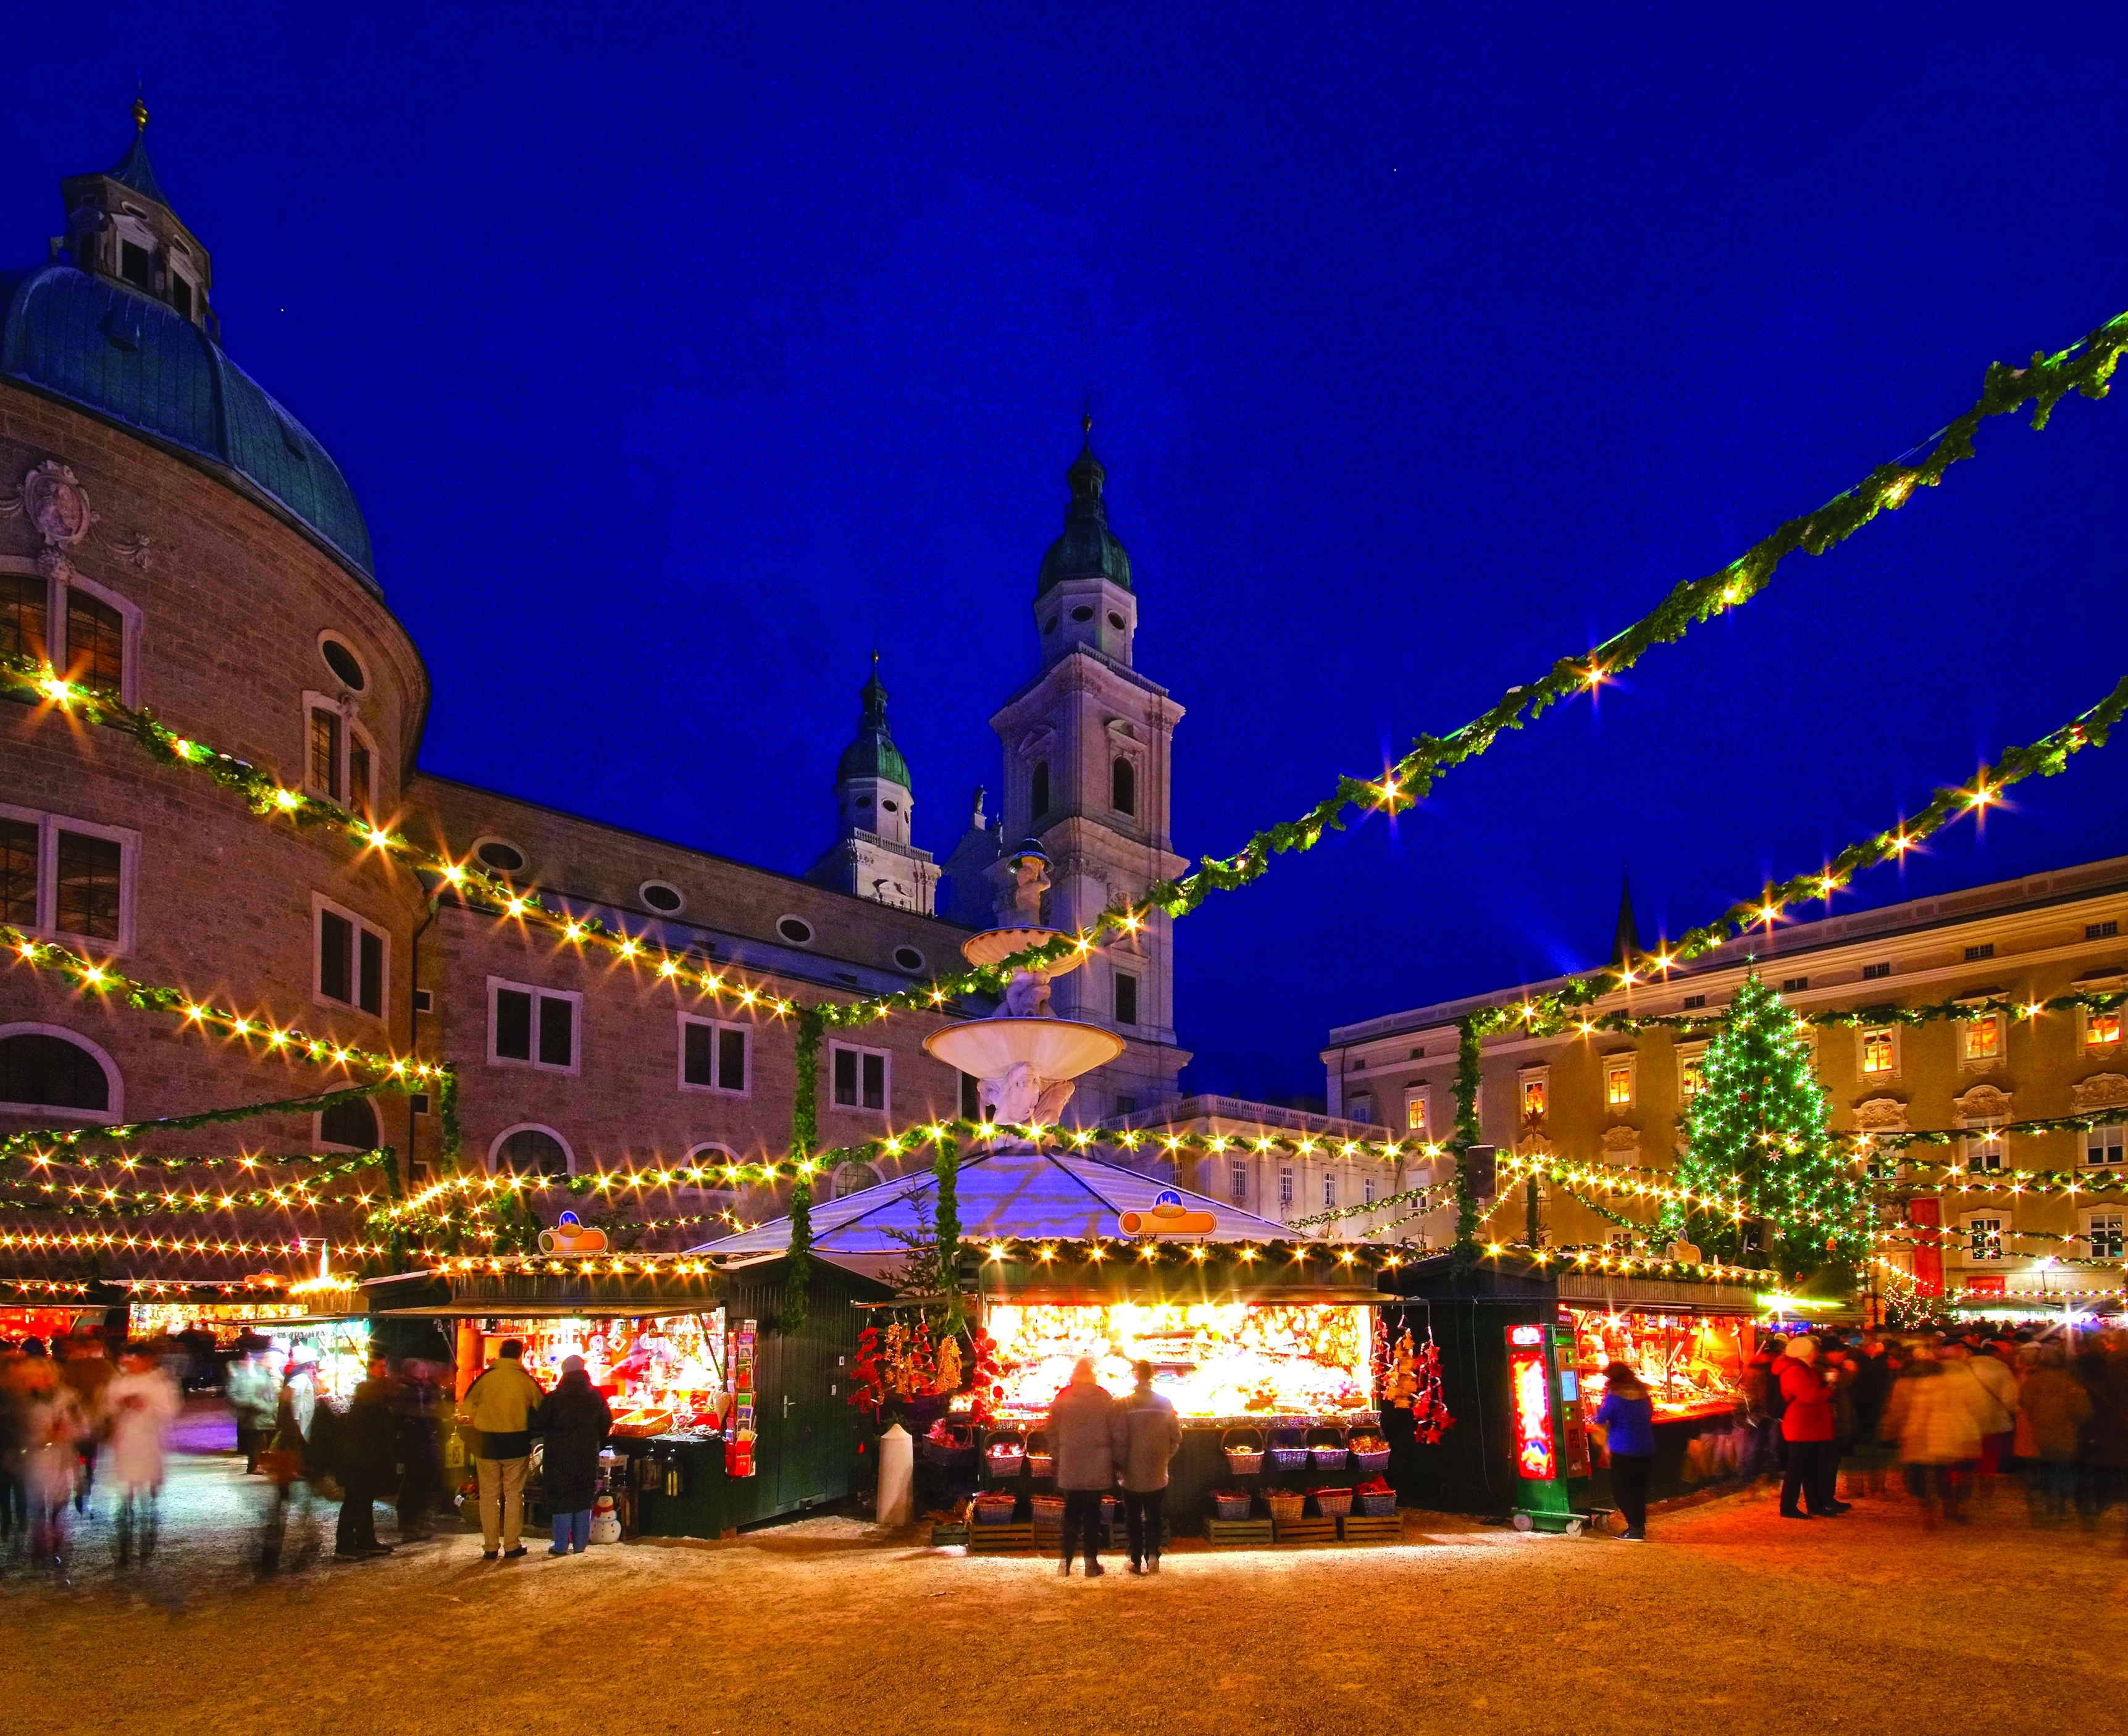 Christmas In Austria.Magical Christmas Markets Of Austria And Germany Innsbruck